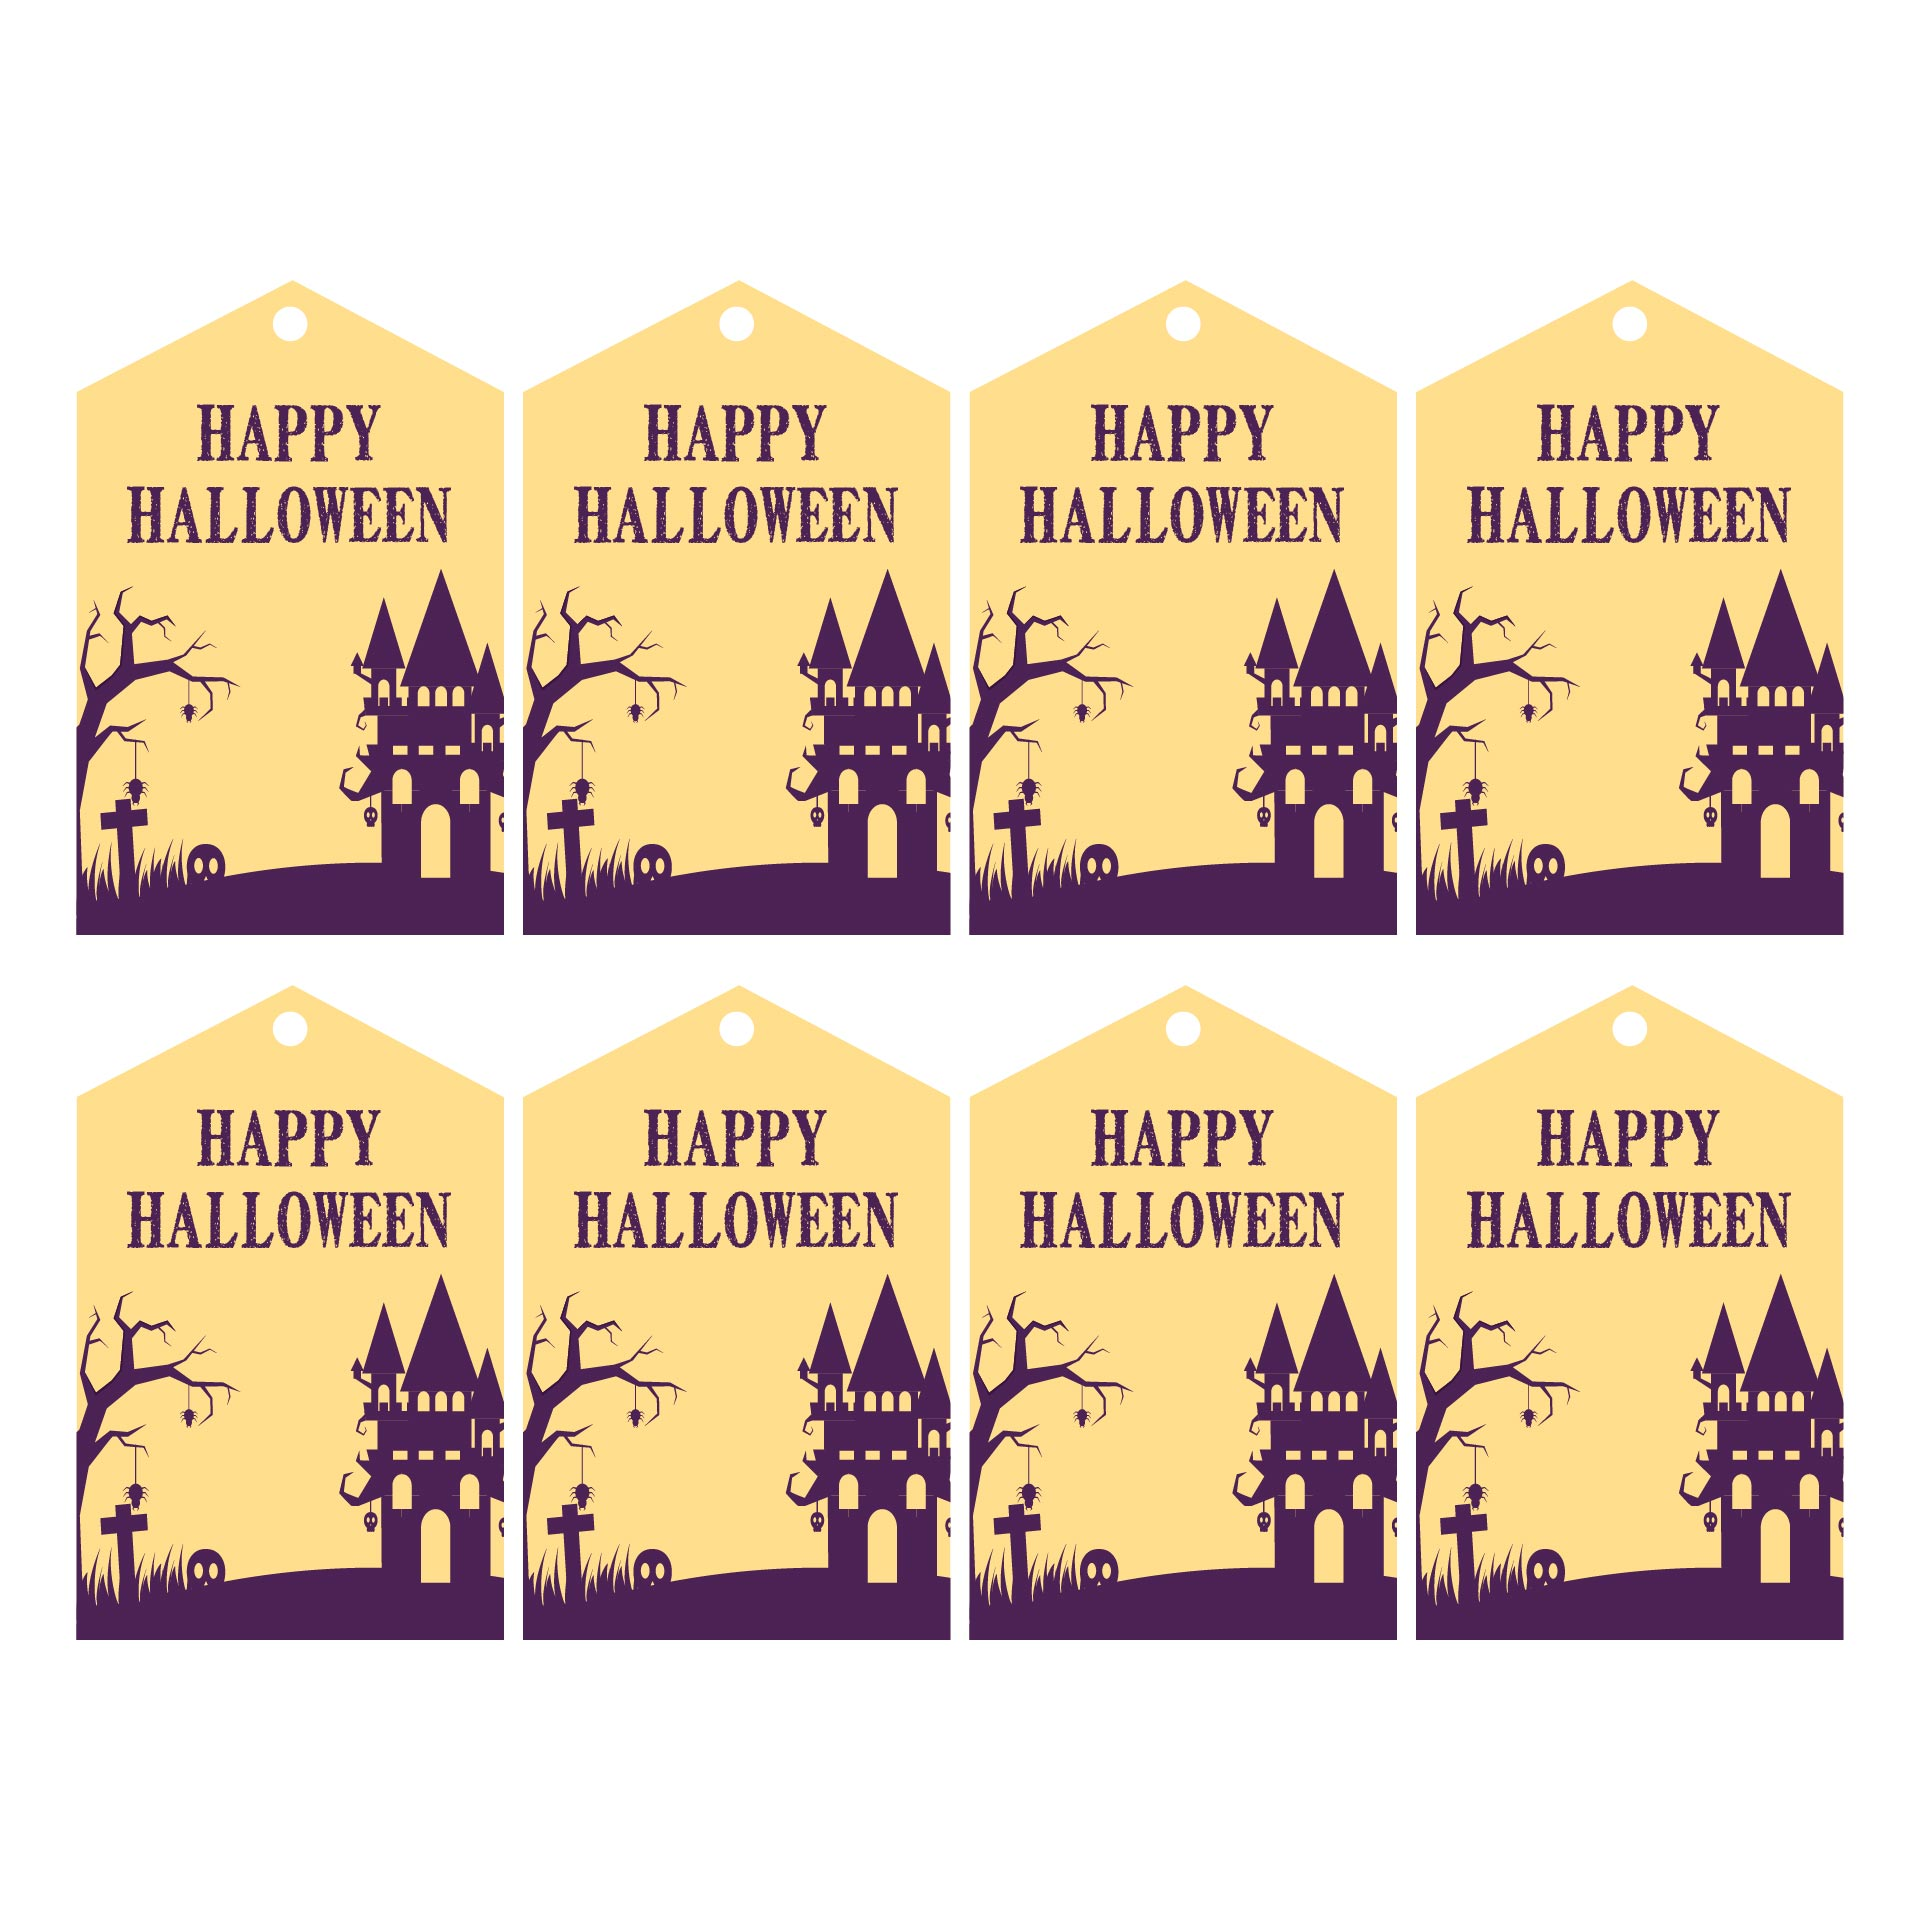 5 Images of Cute Halloween Gift Tags Printable